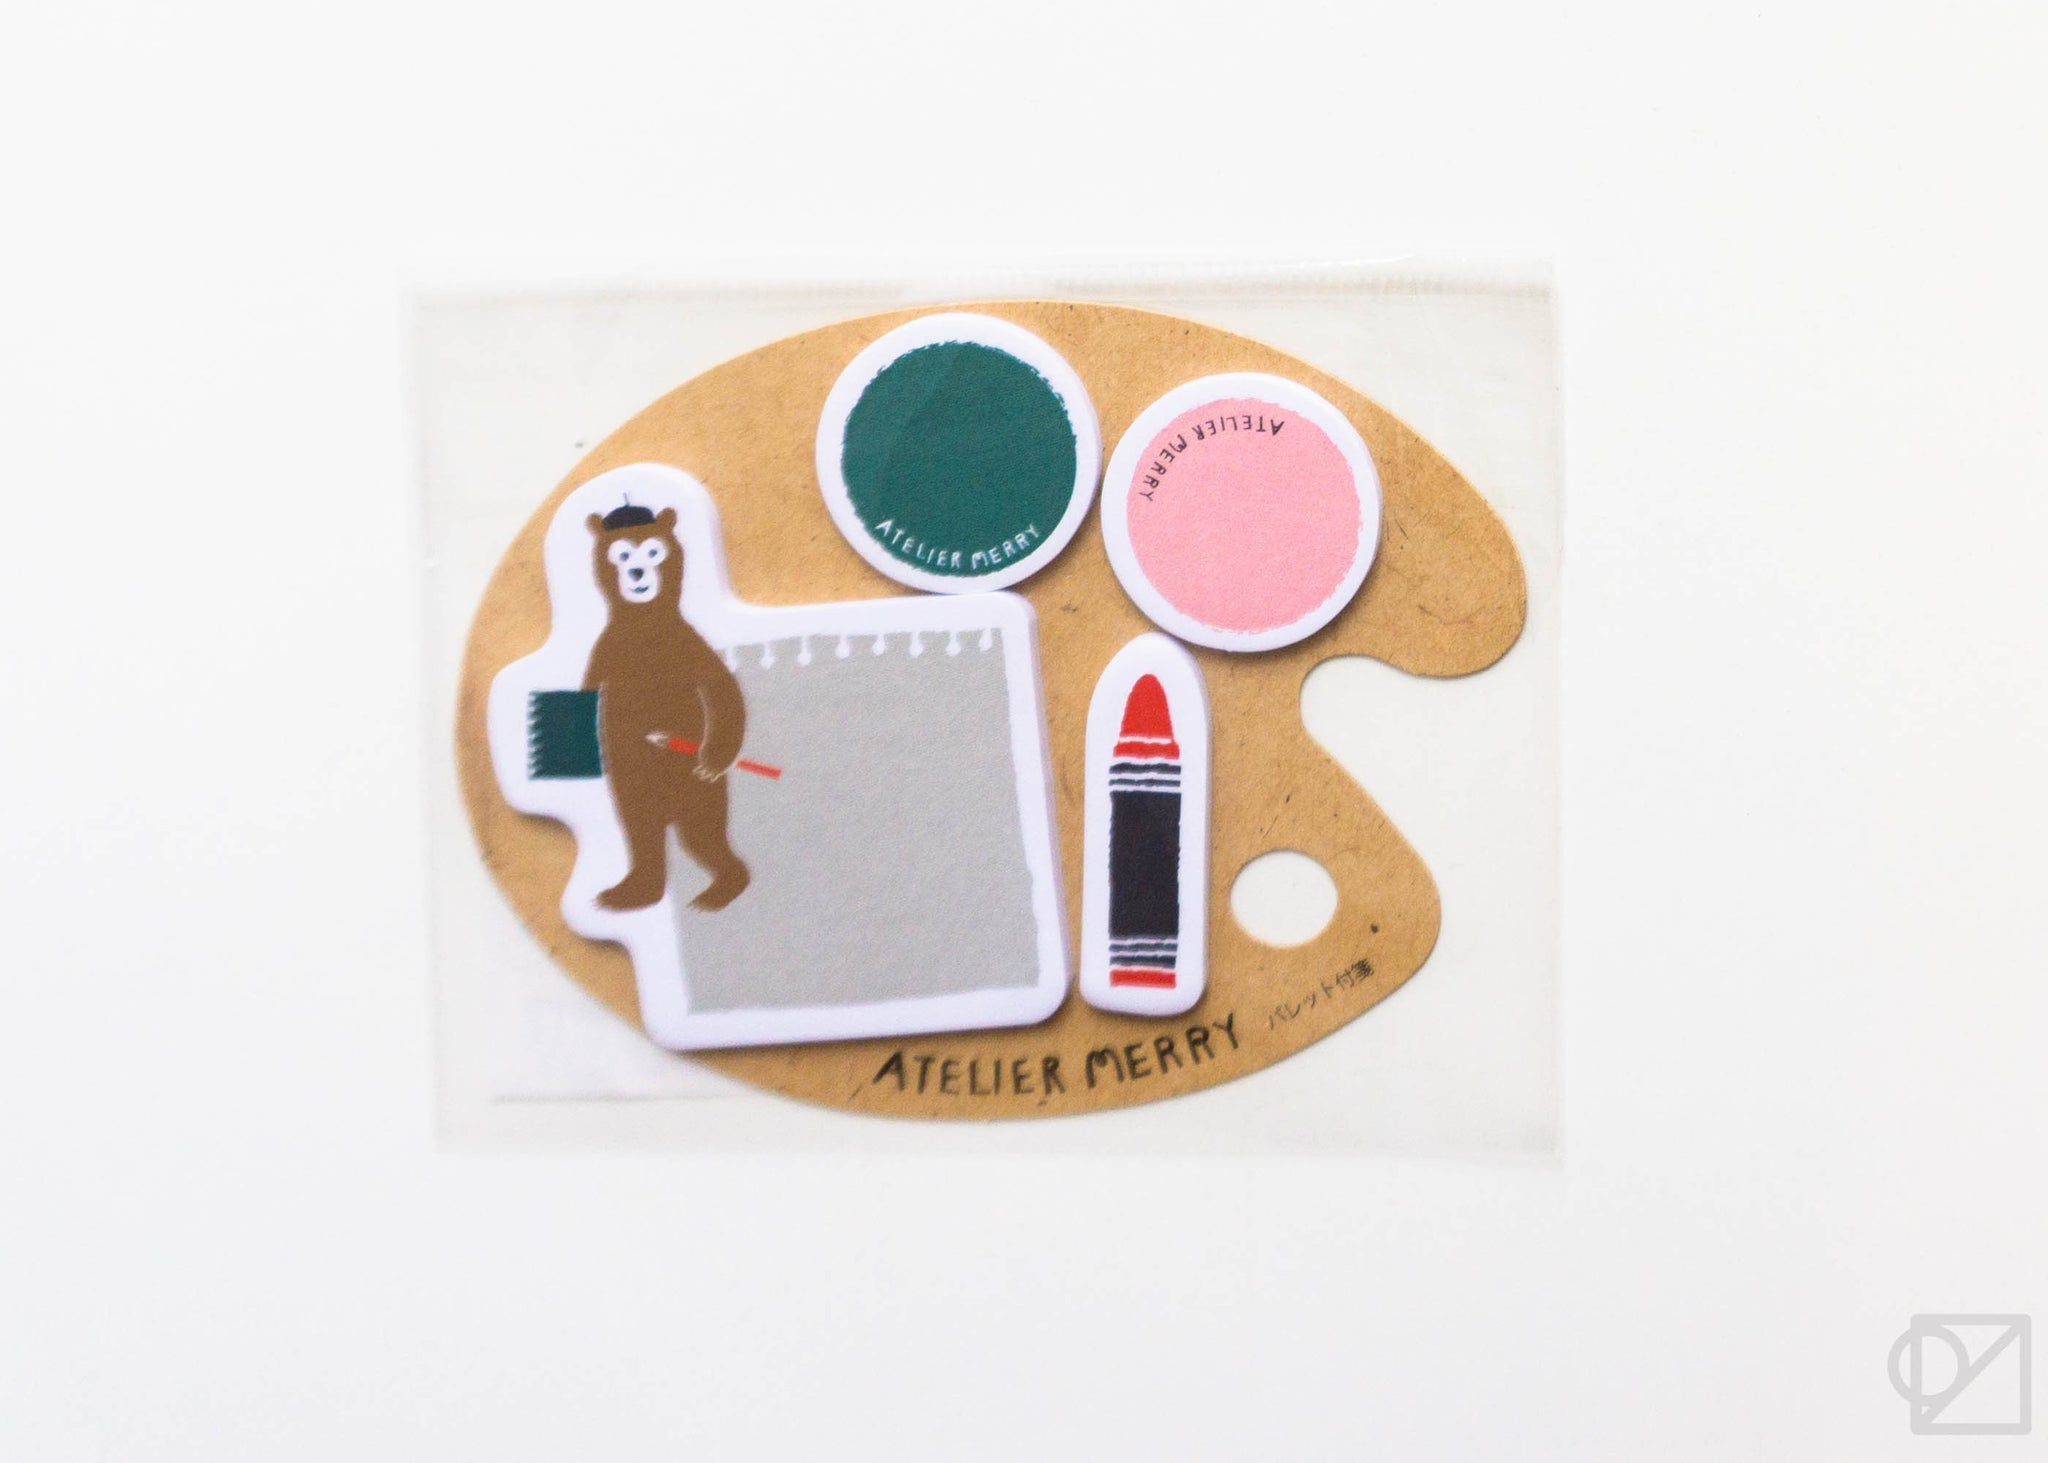 Atelier Merry Sticky Note Set